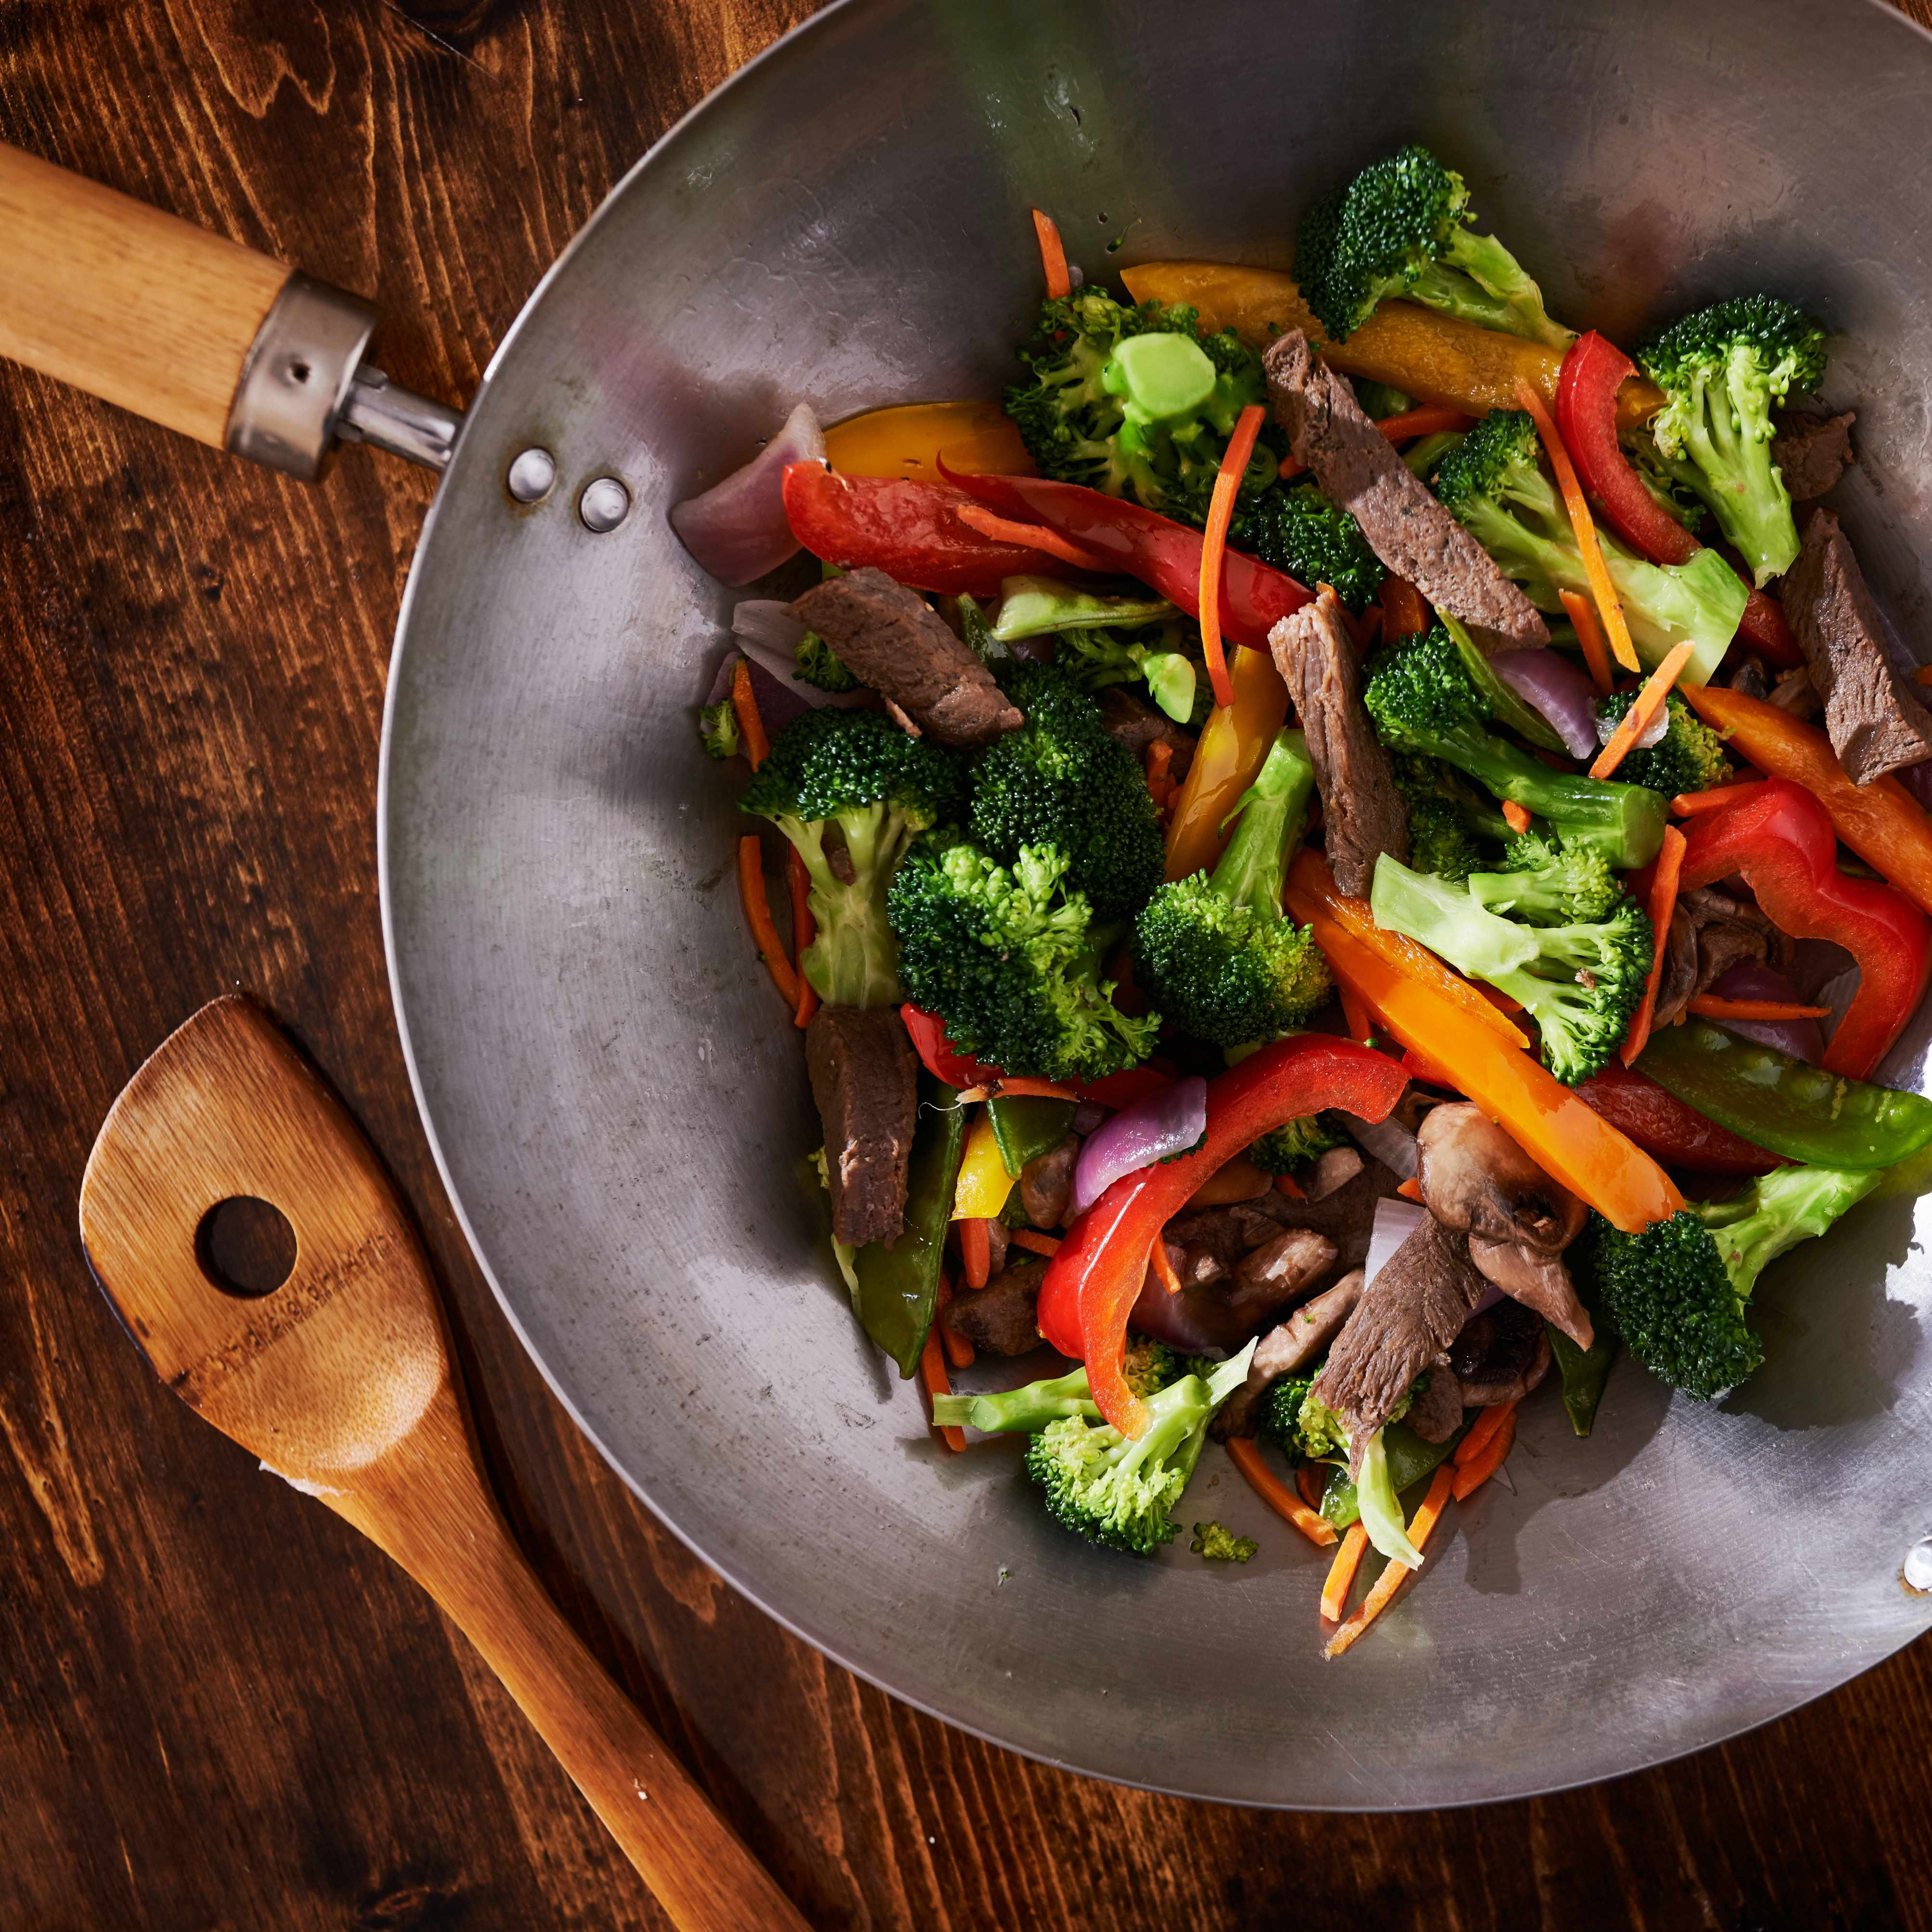 beef and vegetables in a stir fry wok